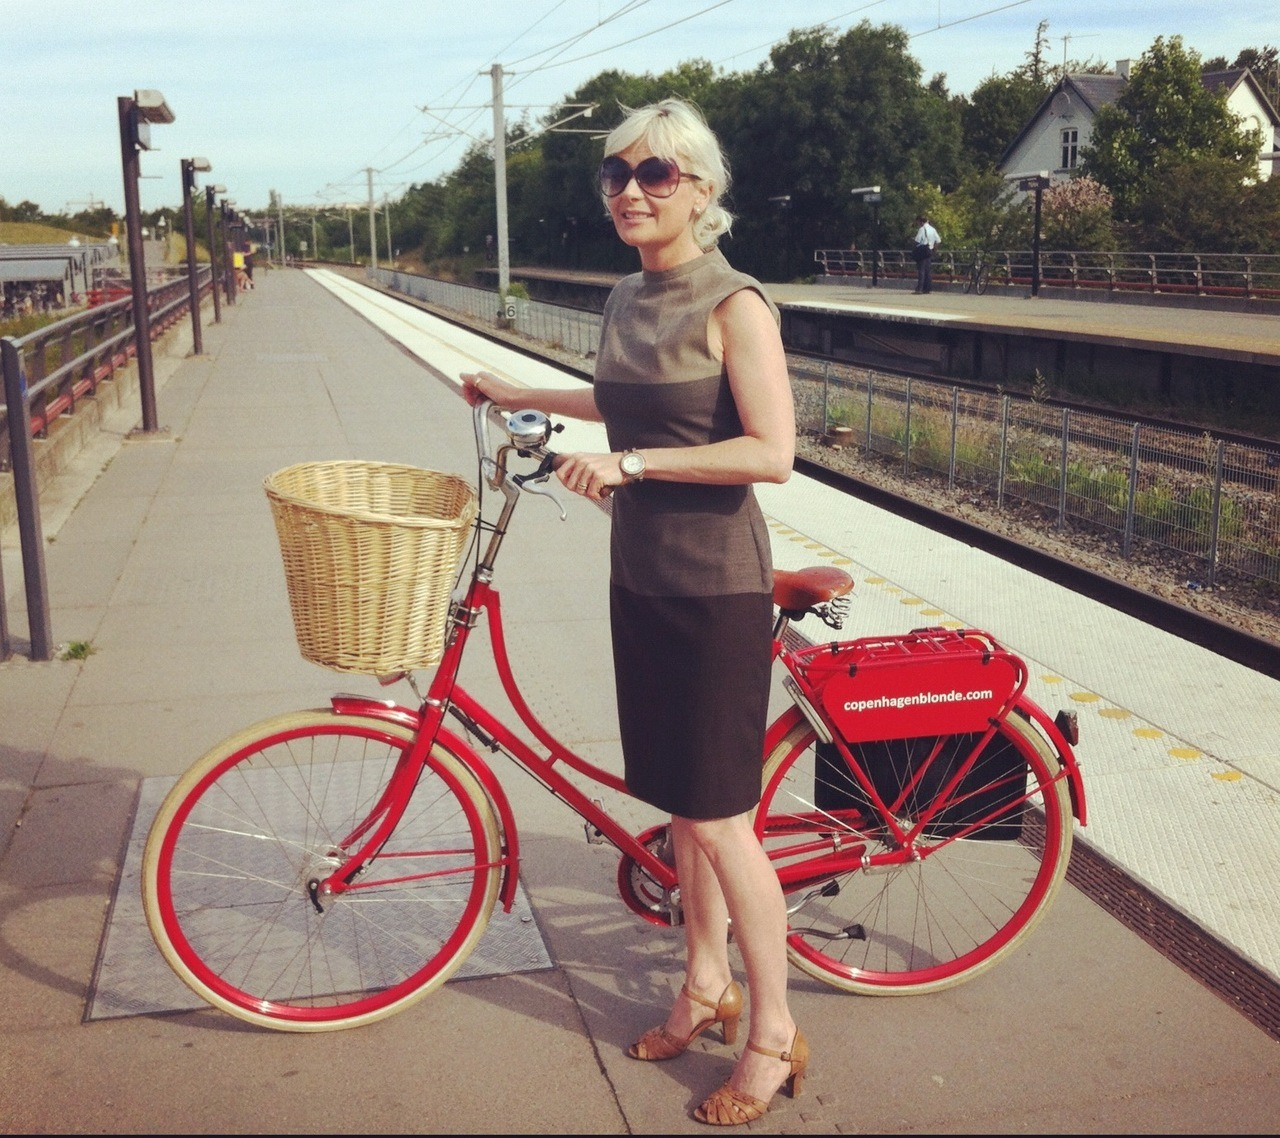 "AG Go-Go, 41 year old, sends her greetings from the City of Cyclists, Copenhagen. Copenhagen, Denmark Why do you ride? I ride because of two reasons: 1. Transport - brings me fast, comfortably and fashionably:) to the train station (5 minutes from where I live) - and 2. exercise; a couple of times a week I ride all the way to my job (on my sportsbike) - which is 13 miles . Great for abs and thighs! Best thing about cycling? It's on my terms, don't need to be stuck in traffic jam like when driving a car. And it makes my brain work well, coming up with new ideas when moving my body to the cycle rhythm. What improvements would you like to see for cyclists? More green routes! Away from the car traffic. However, I think Copenhagen is a great city for cyclists - I love it! Fondest cycling memory? I don't have a specific experience, it's more sort of the great comfort of riding my new red Velorbis bike. In cycle language it must be like driving a limo. Cycling tip? If you do bicycle a lot, do yourself the favor of spoiling yourself with a chic and comfortable bike. It makes bicycling so much more fun. And yes, remember a solid lock! 3 things you'd love the world to know about you? - My mantra is ""celebrate life - celebrate yourself!"" - I may seem a bit superficial and ""too positive"", but I'm not (superficial) - I've been through hard times, and the strategy the rest of my life is to focus on love and possibilities. - My blog is www.copenhagenblonde.com"